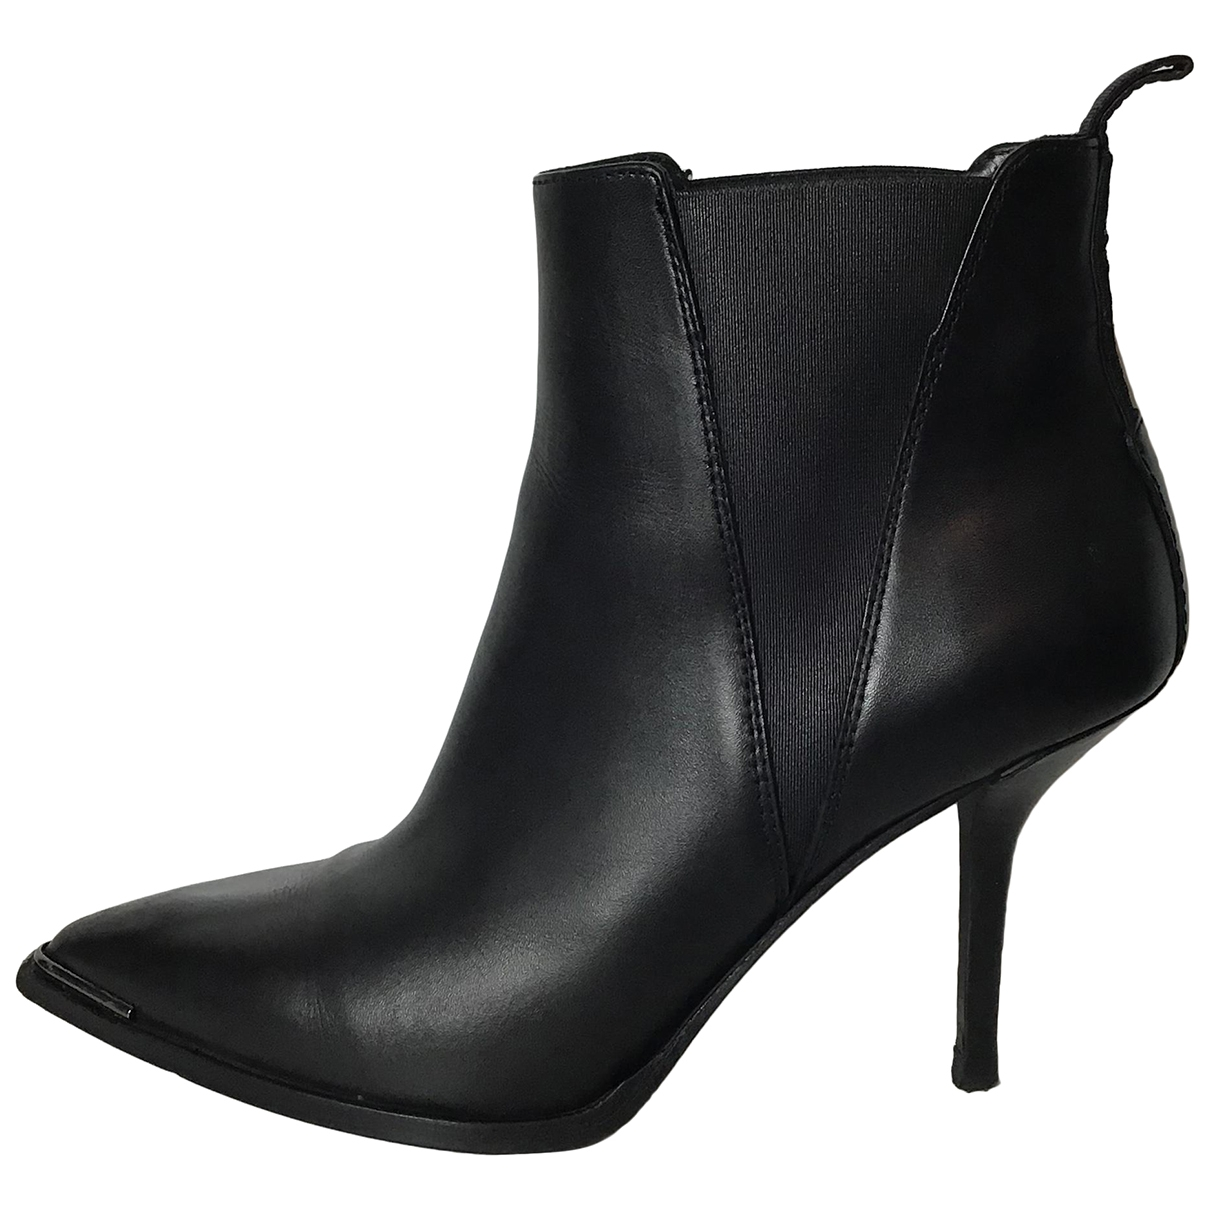 Acne Studios \N Black Leather Ankle boots for Women 38 EU